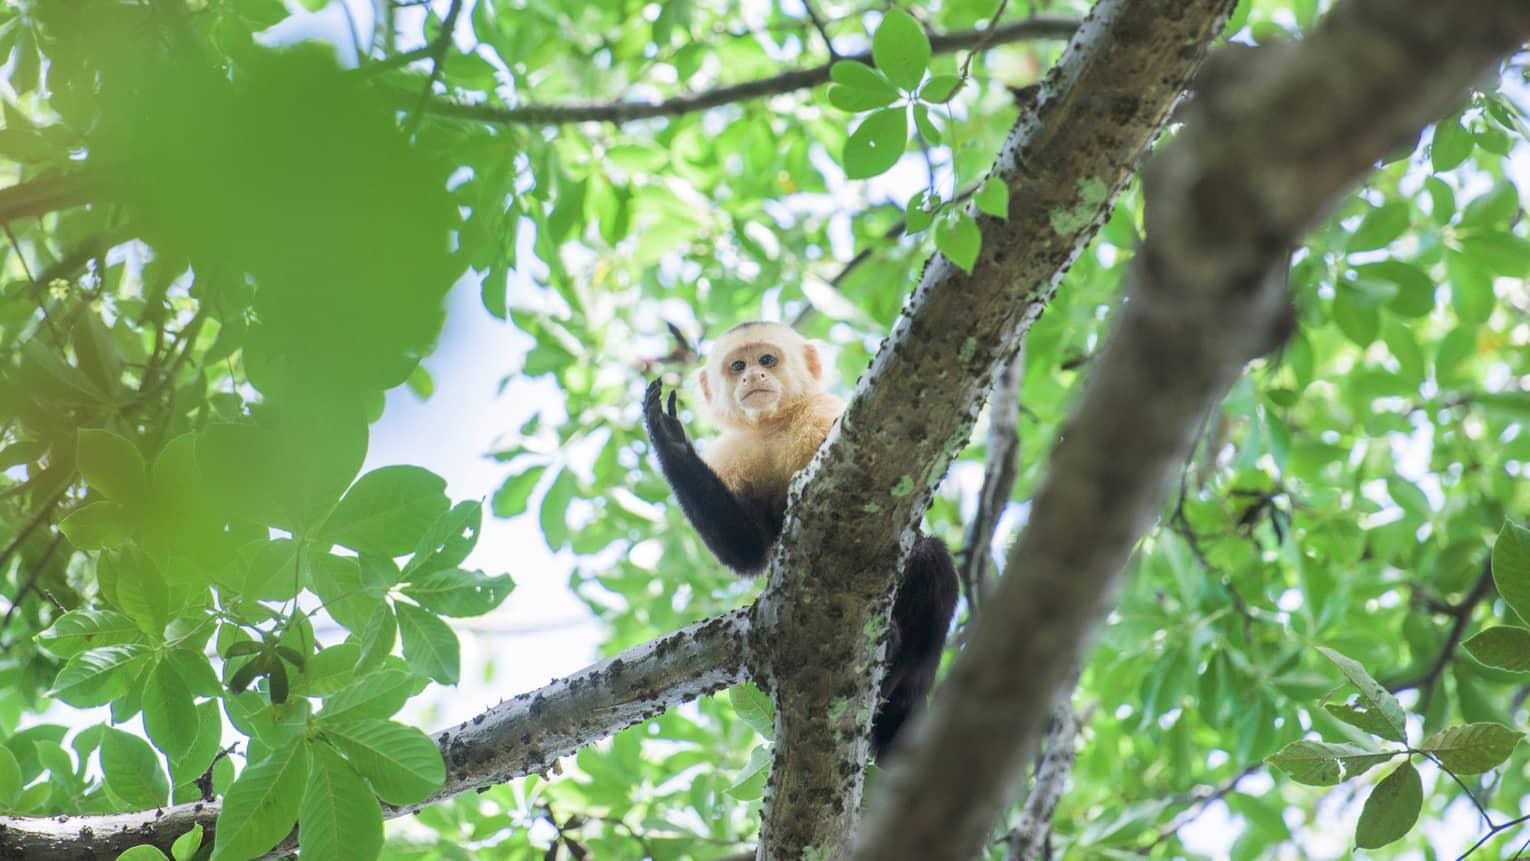 Small monkey peeks out from branch high in tree